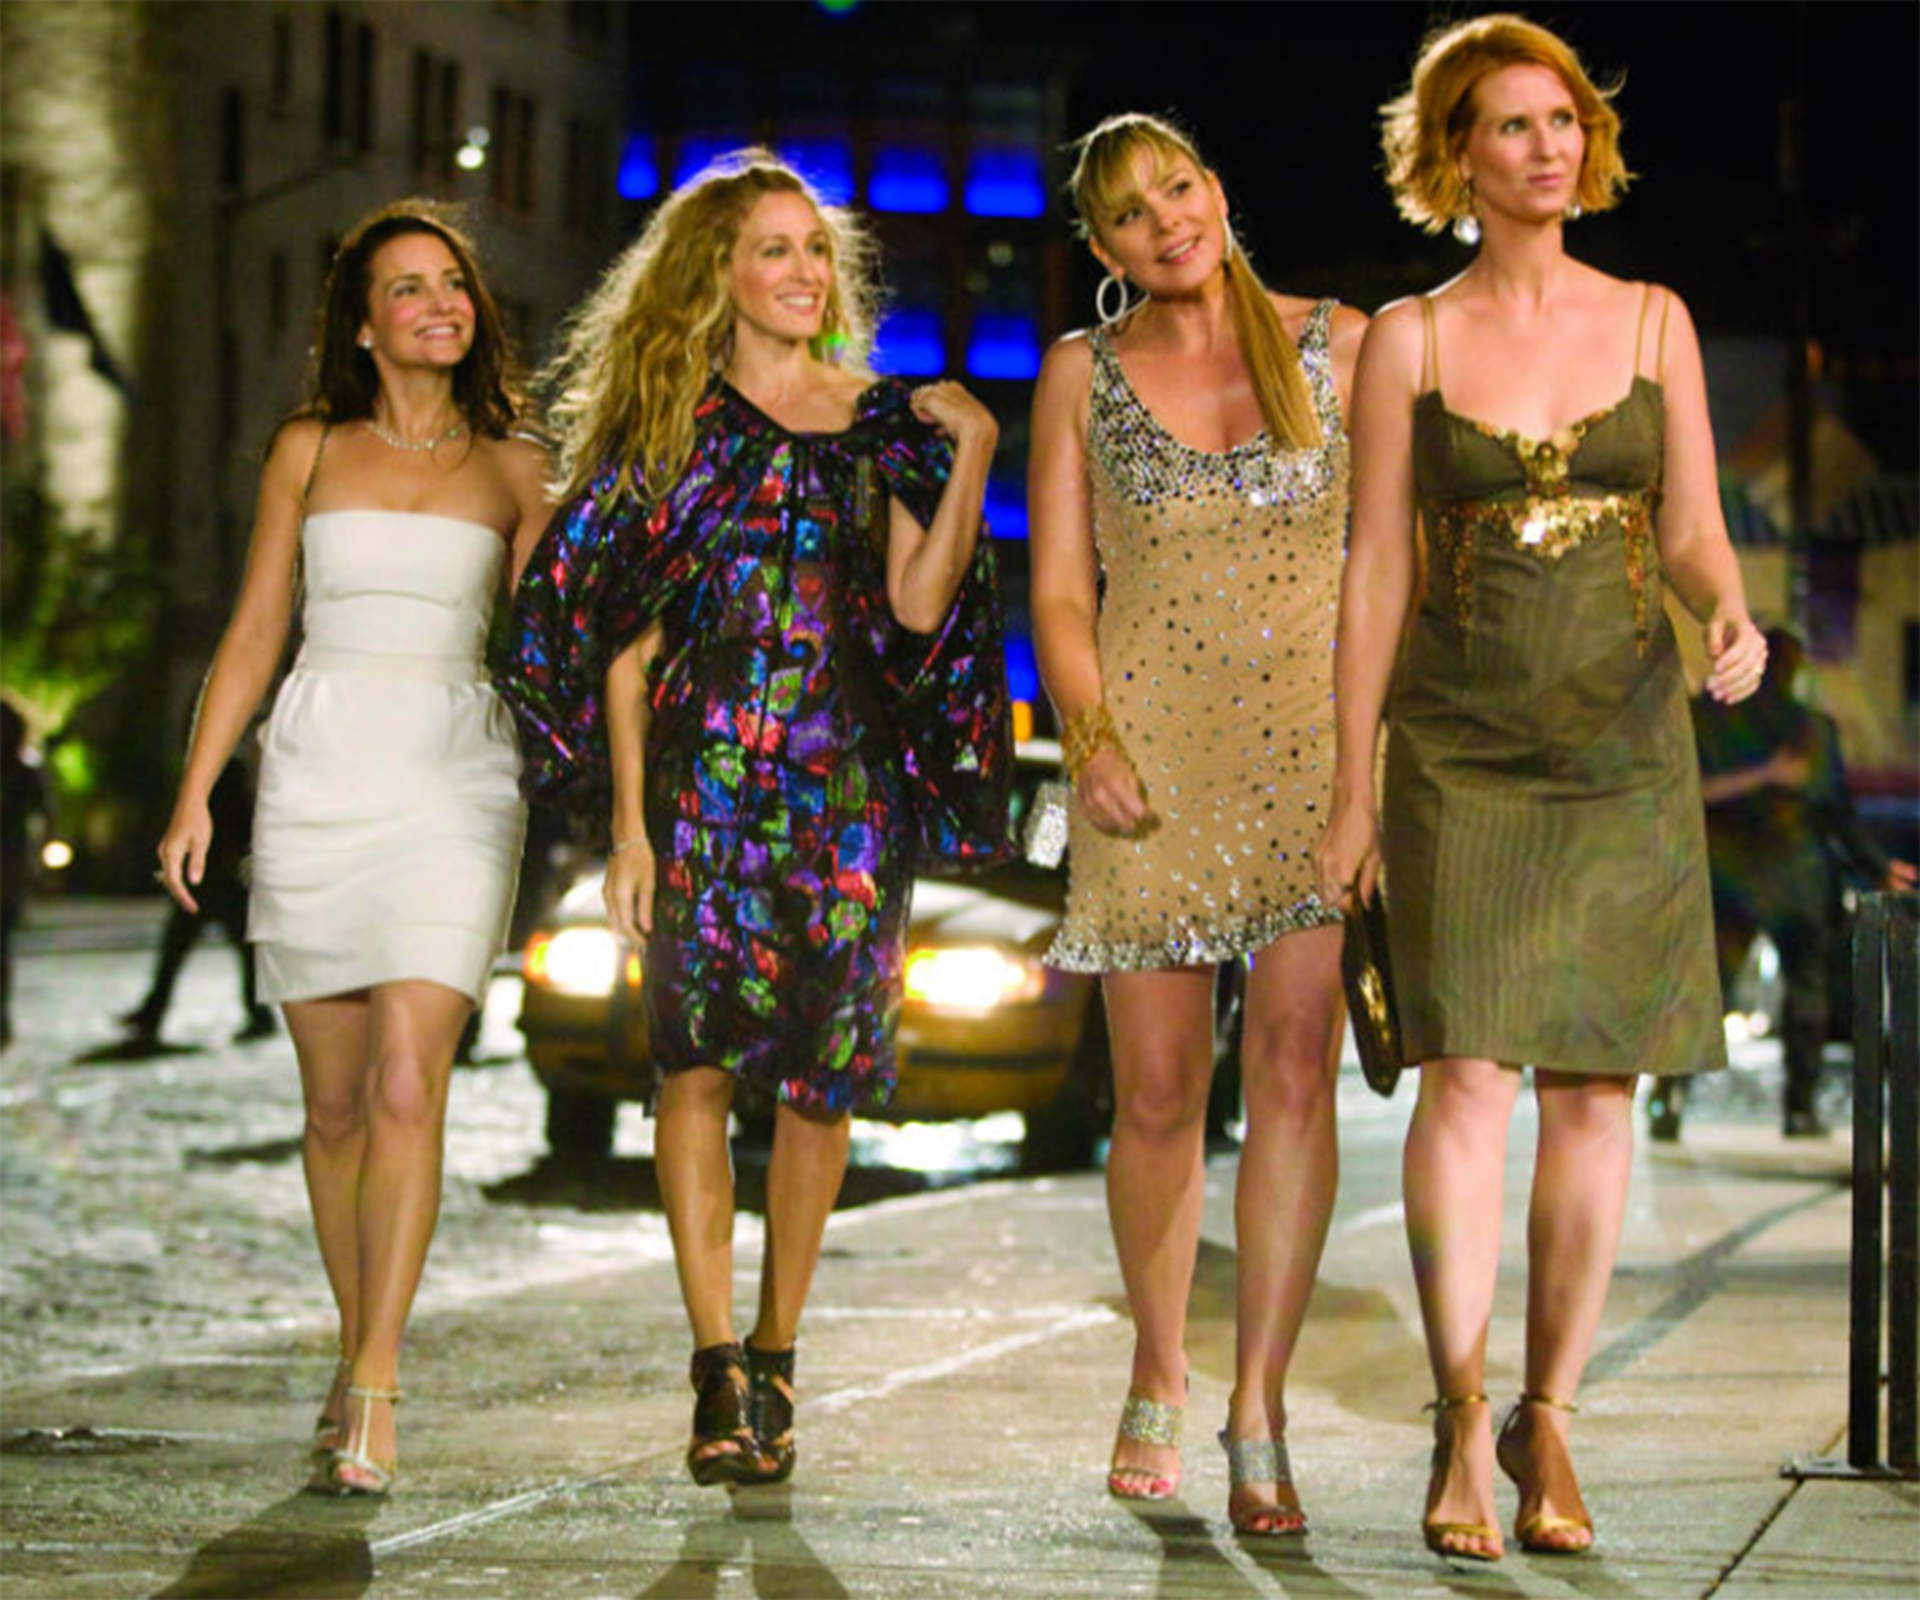 Sex and the City 3 isn't happening, Sarah Jessica Parker says